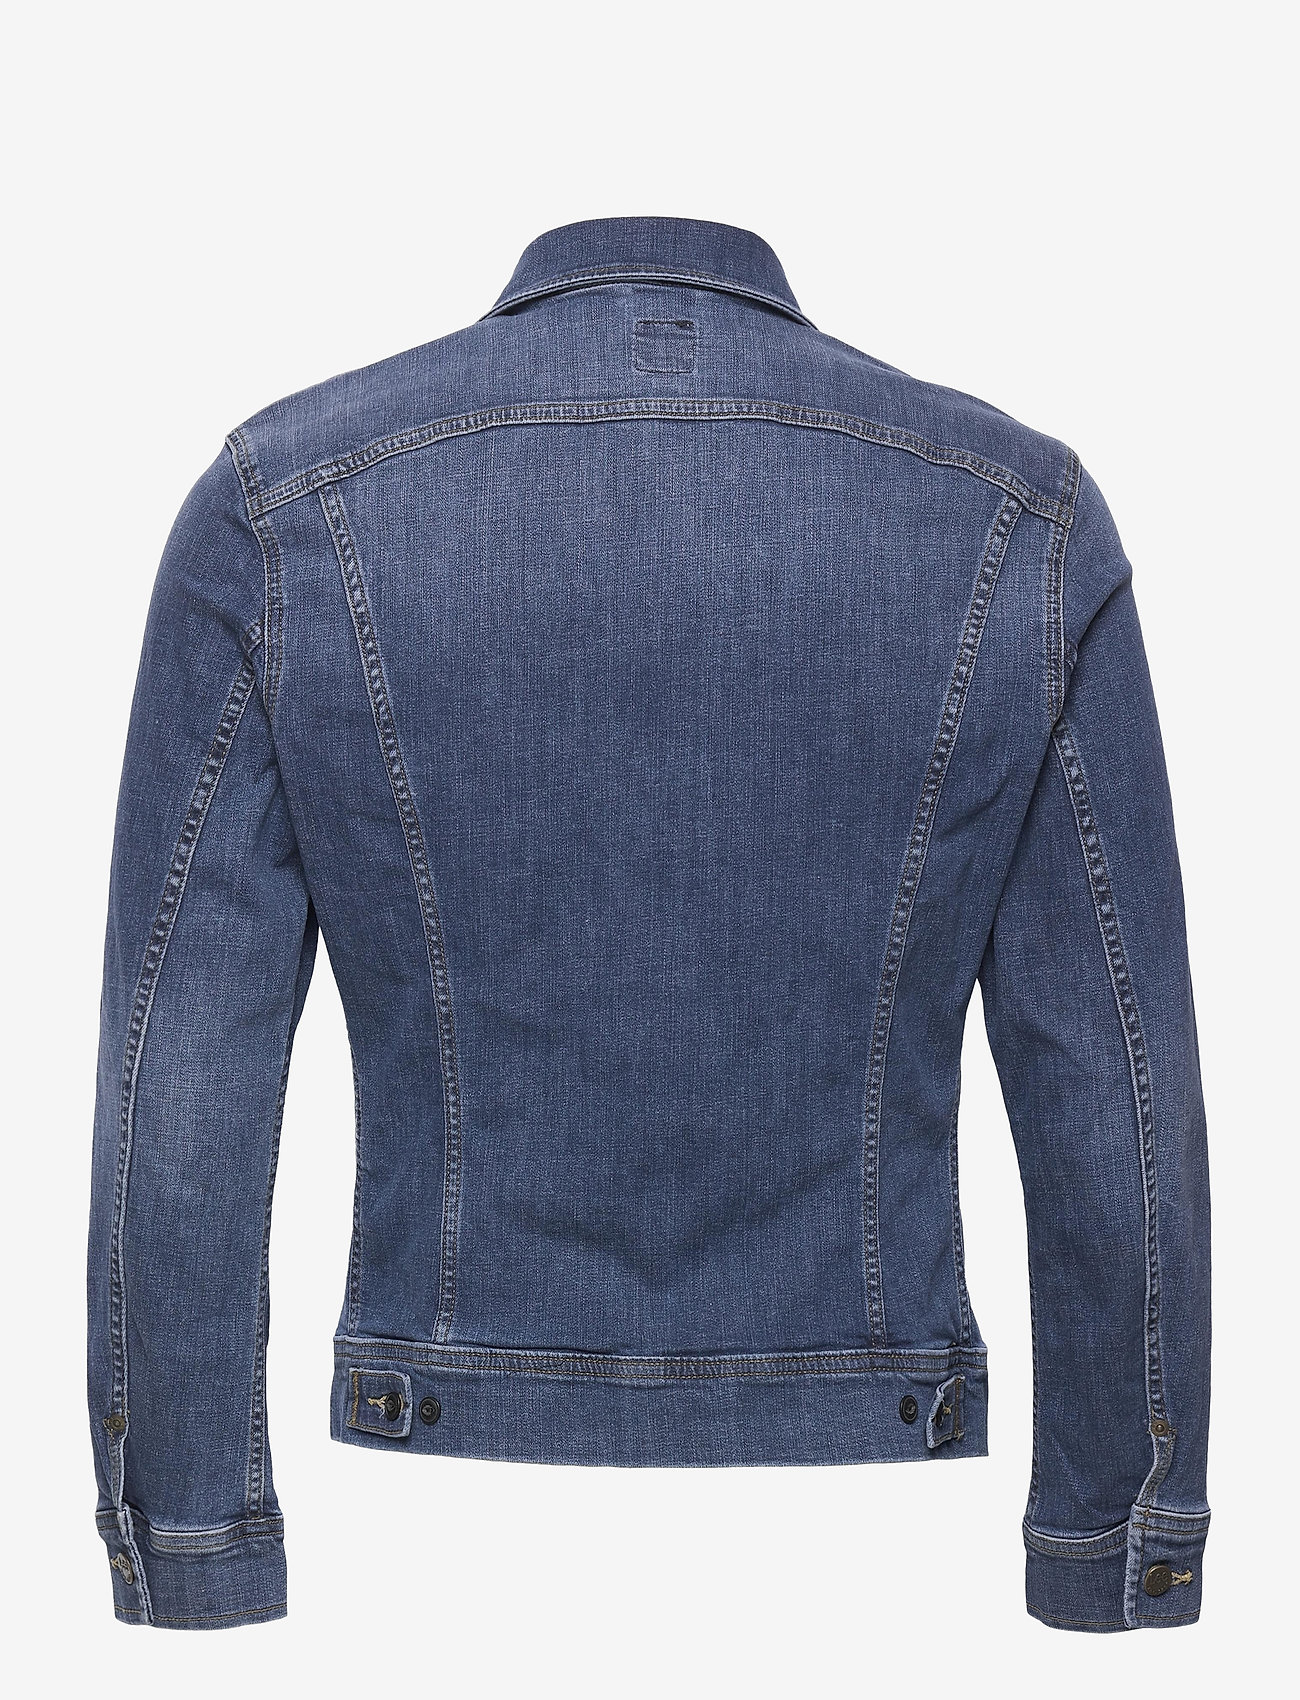 Lee Jeans - SLIM RIDER - denim jackets - mid visual cody - 1